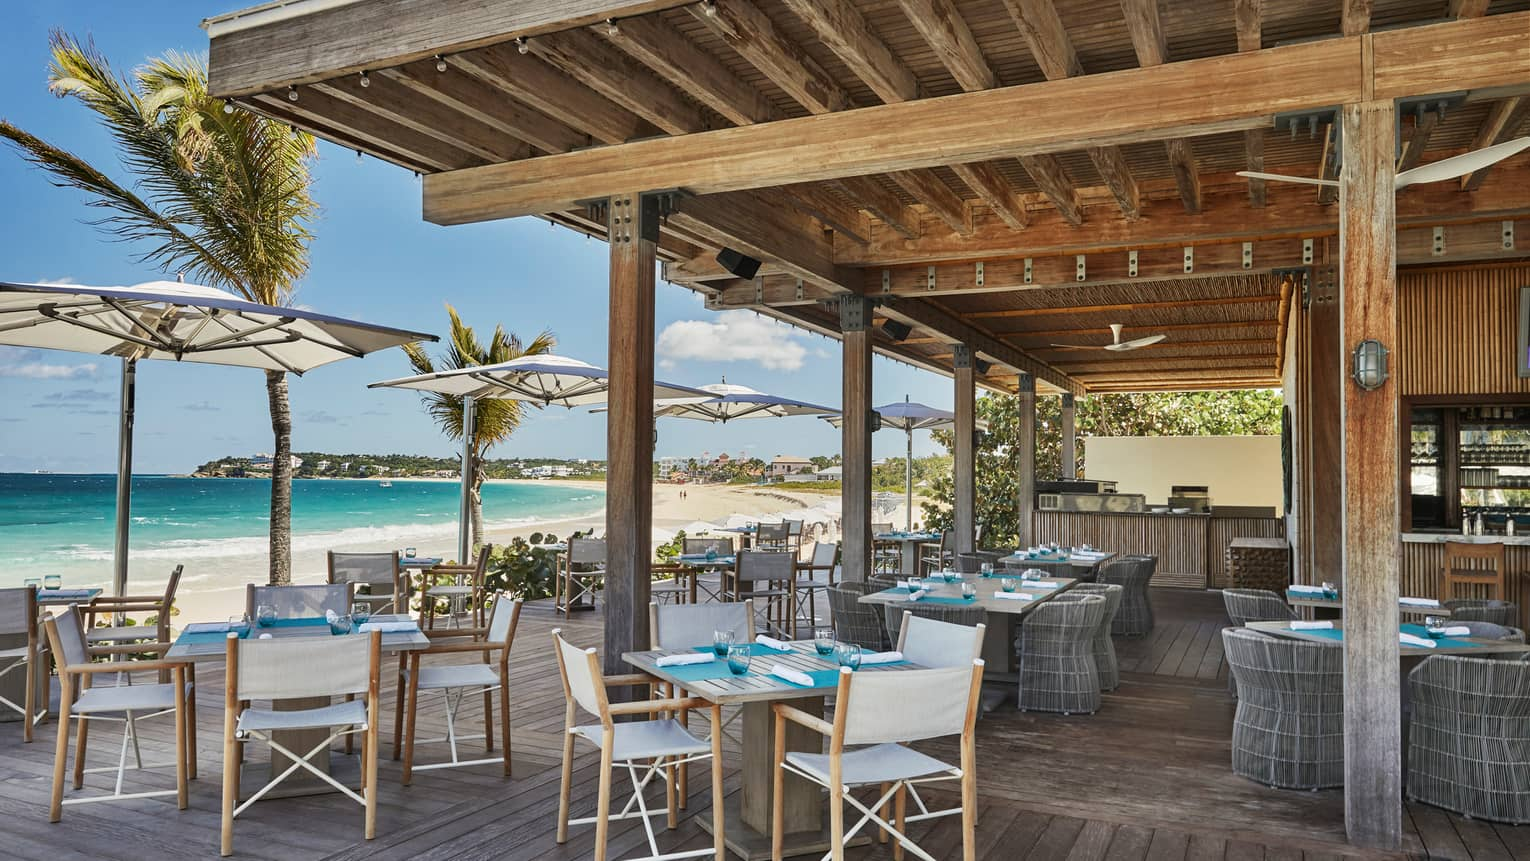 Bamboo restaurant outdoor patio, tables and chairs under wood pergola, beside sunny beach